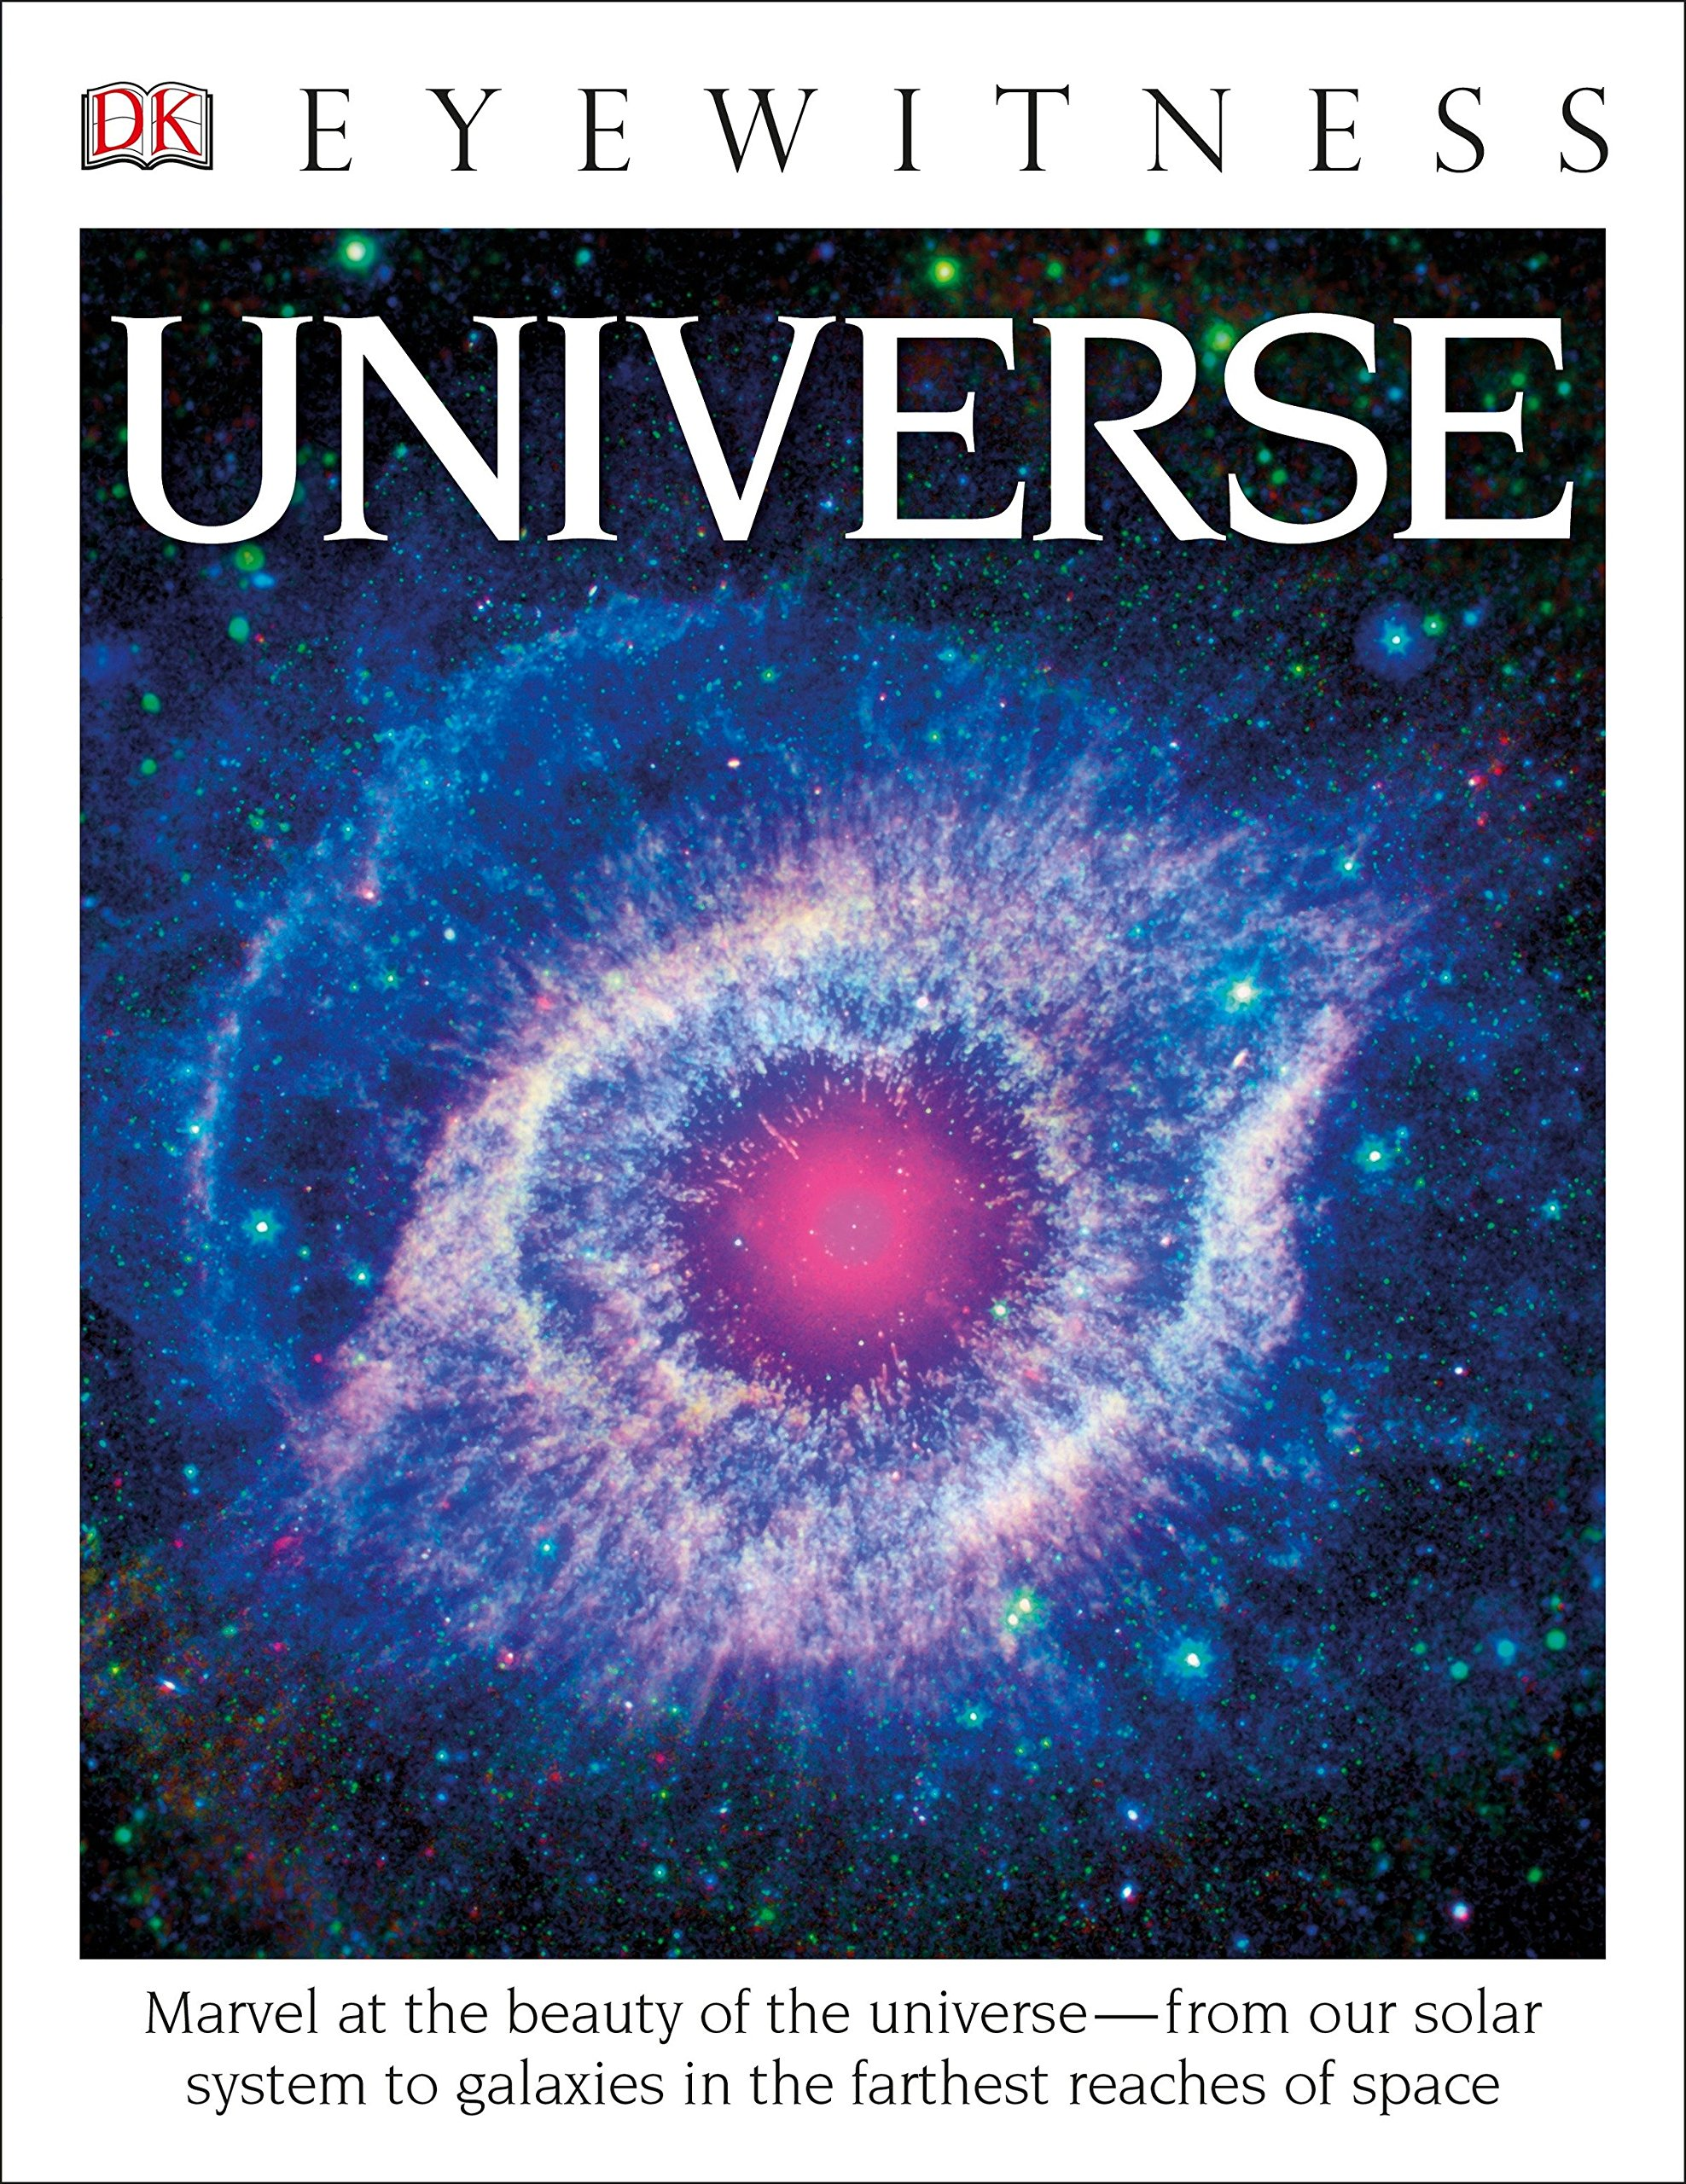 DK Eyewitness Books: Universe: Marvel at the Beauty of the Universe from  Our Solar System to Galaxies in the Fa: DK: 9781465431875: Books - Amazon.ca